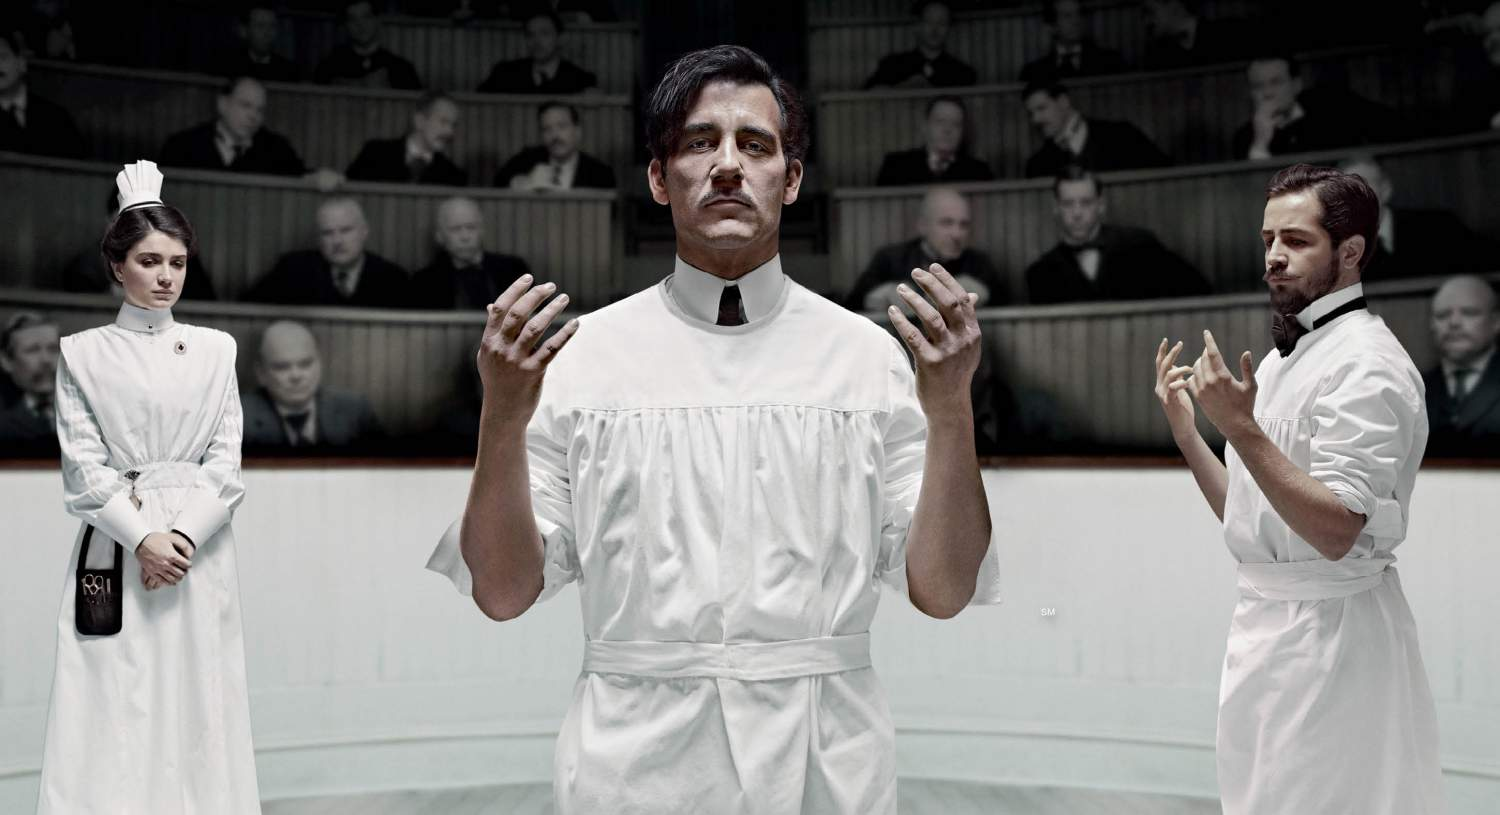 Clive Owen als Chefarzt Dr. Thackery in 'The Knick'